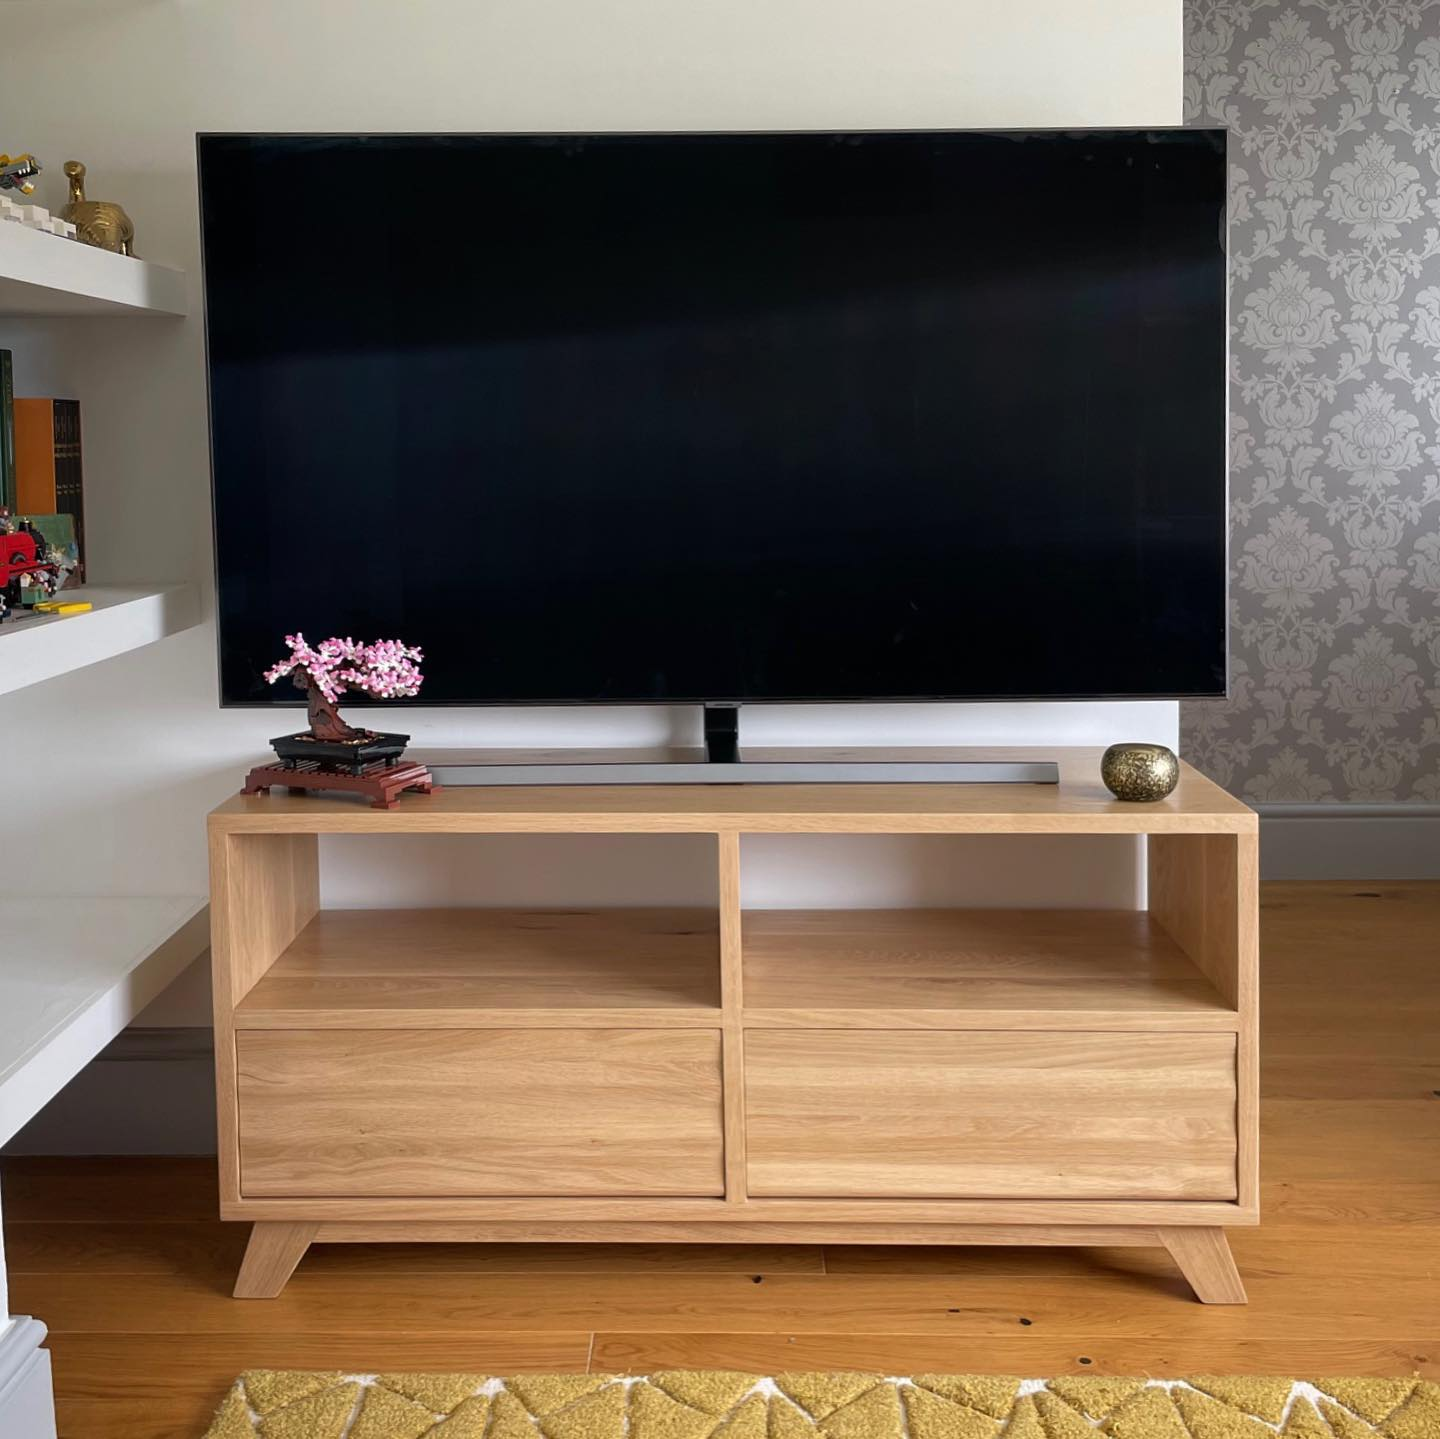 We are absolutely delighted to see this Tv stand we created in its forever home. We delivered it today and It looks like it's always been there ️ What a lovely end to the week .Thank you to Blossie for being an excellent model!. #bespoke #handmade #customised #madetomeasure #oak #featurewall #tvstand #focalopoint